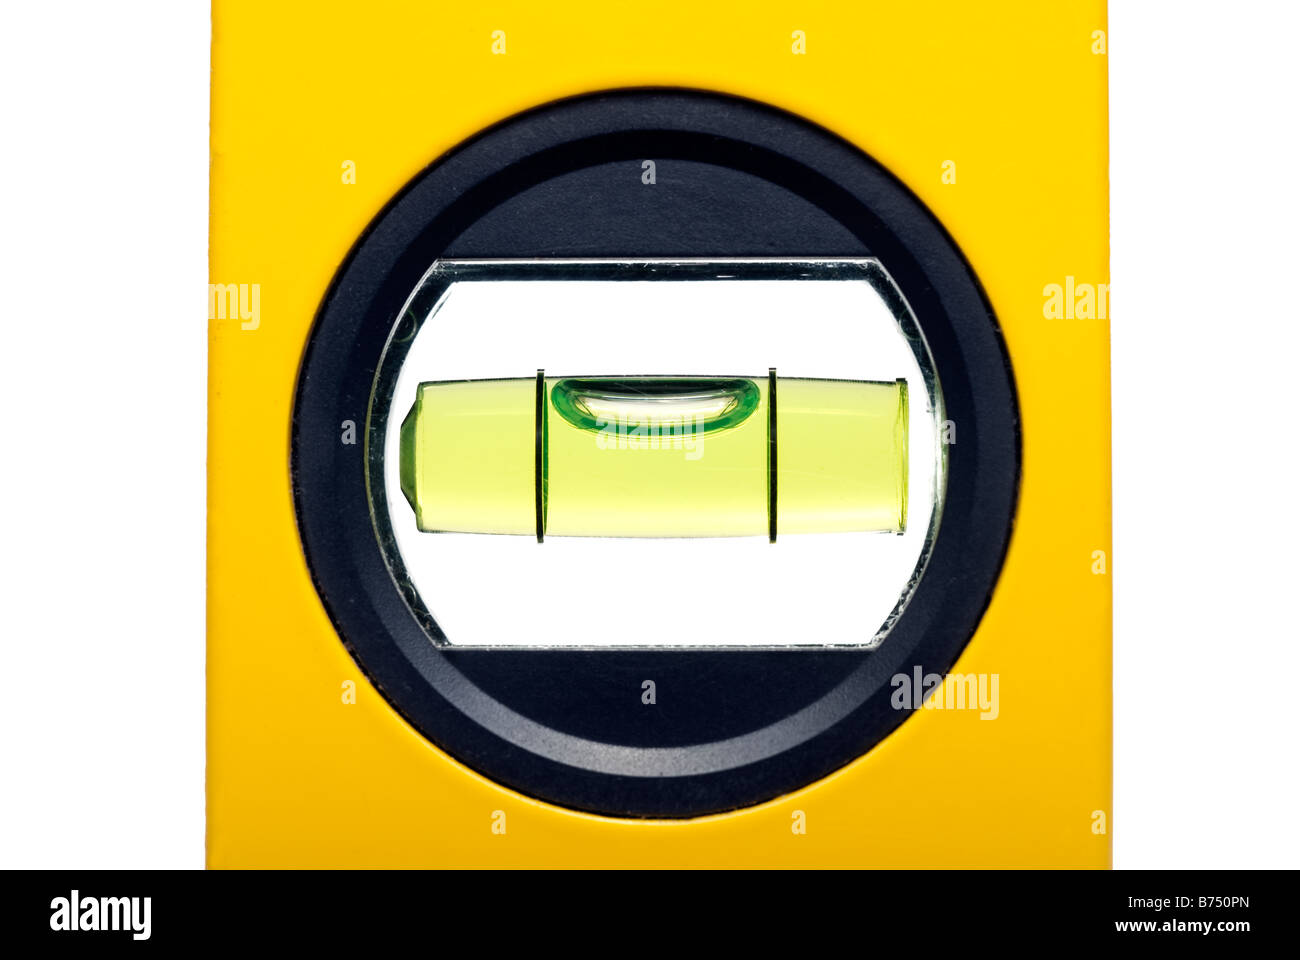 Yellow spirit level and closeup of the bubble - Stock Image